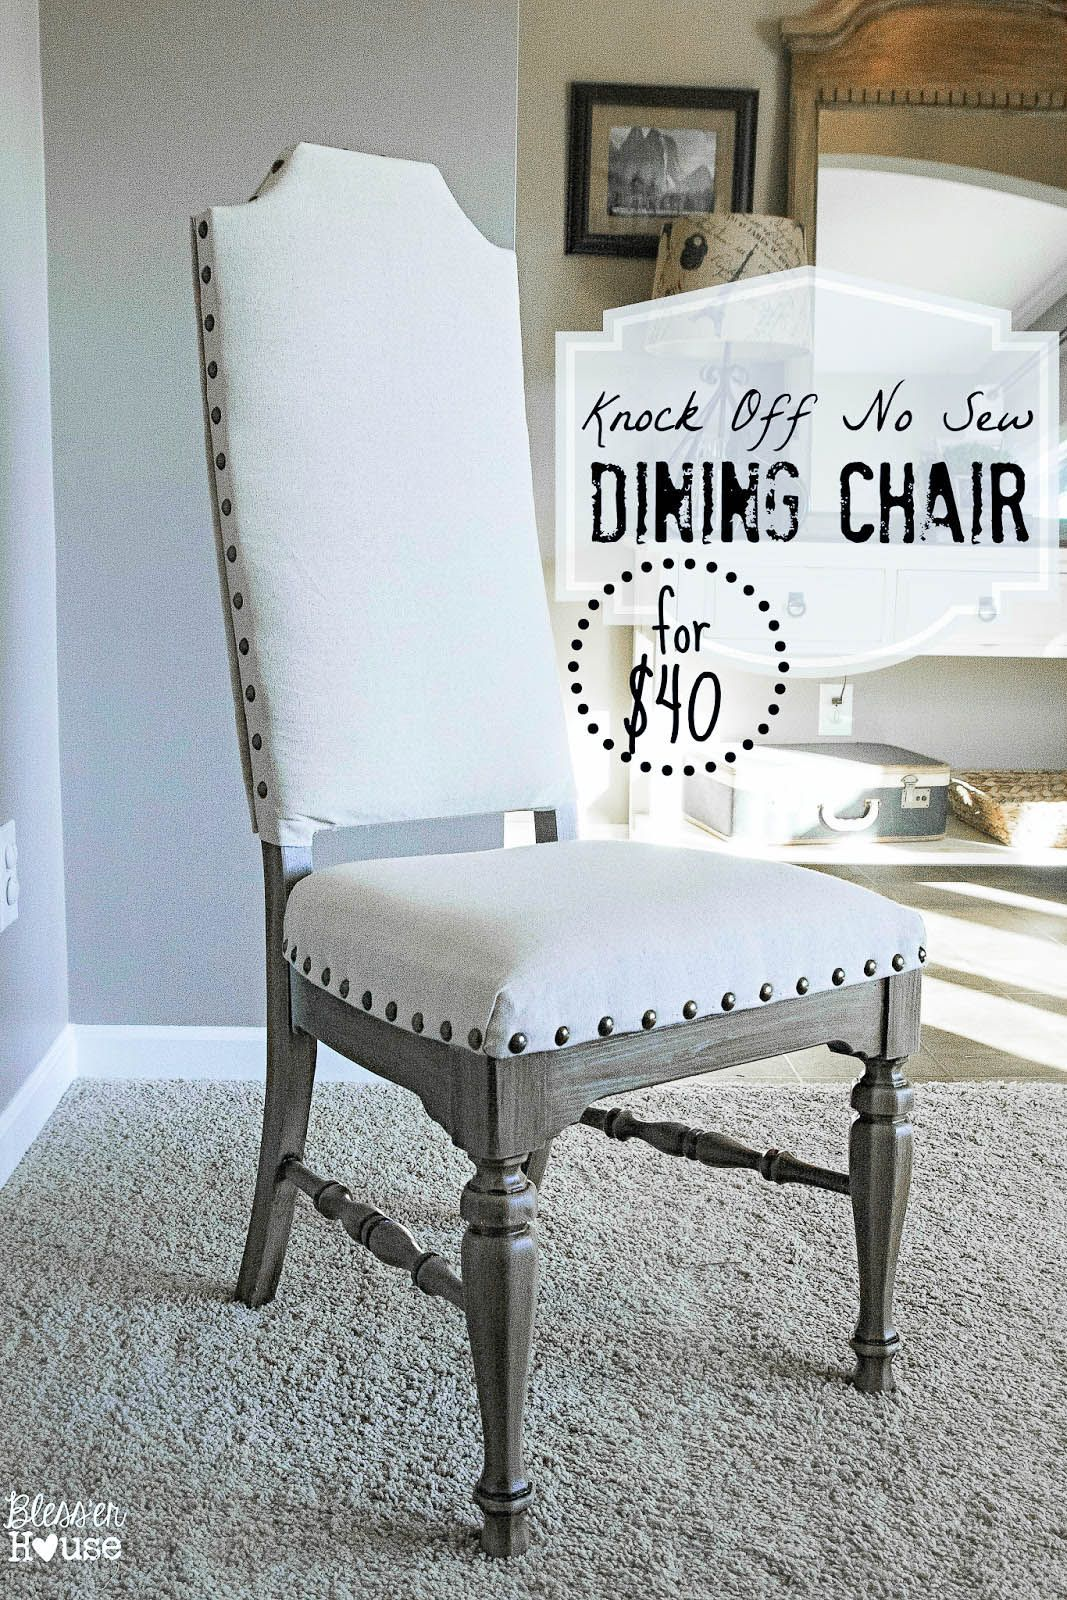 Knock Off No Sew Dining Chairs. Knock Off No Sew Dining Chairs   Dining chairs  Front yards and